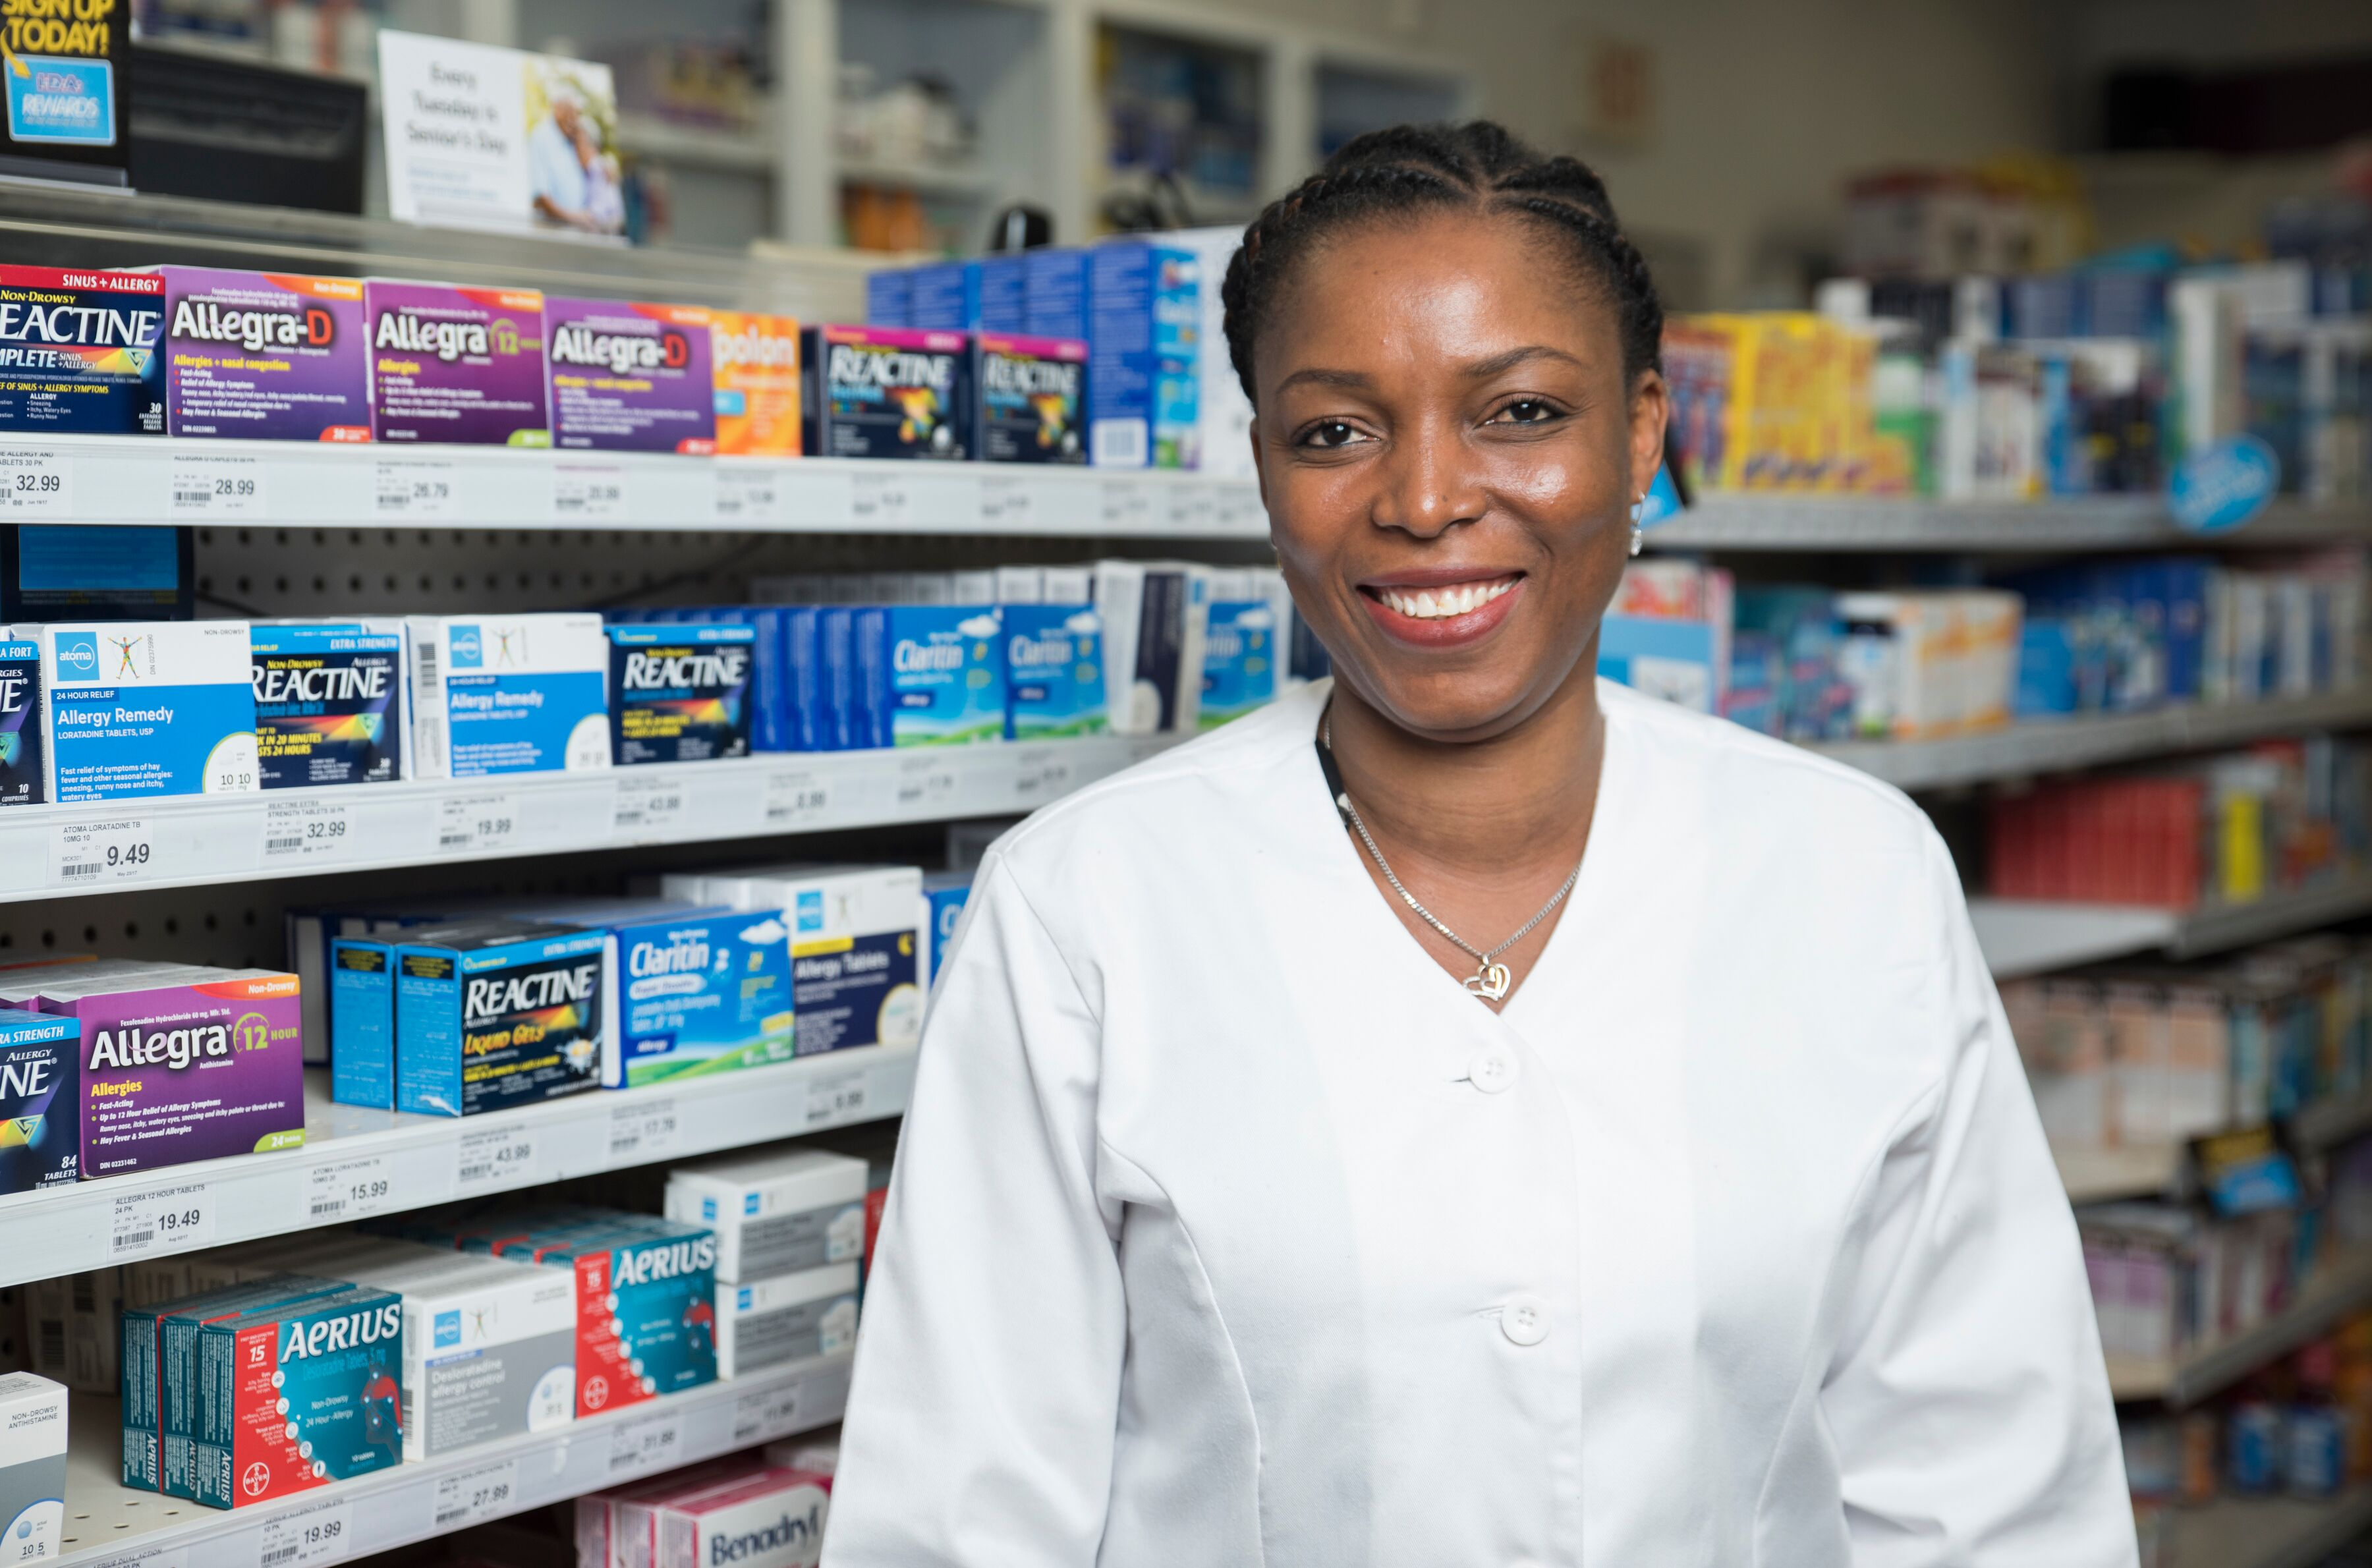 Business Stream - Working at Pharmacy Counter